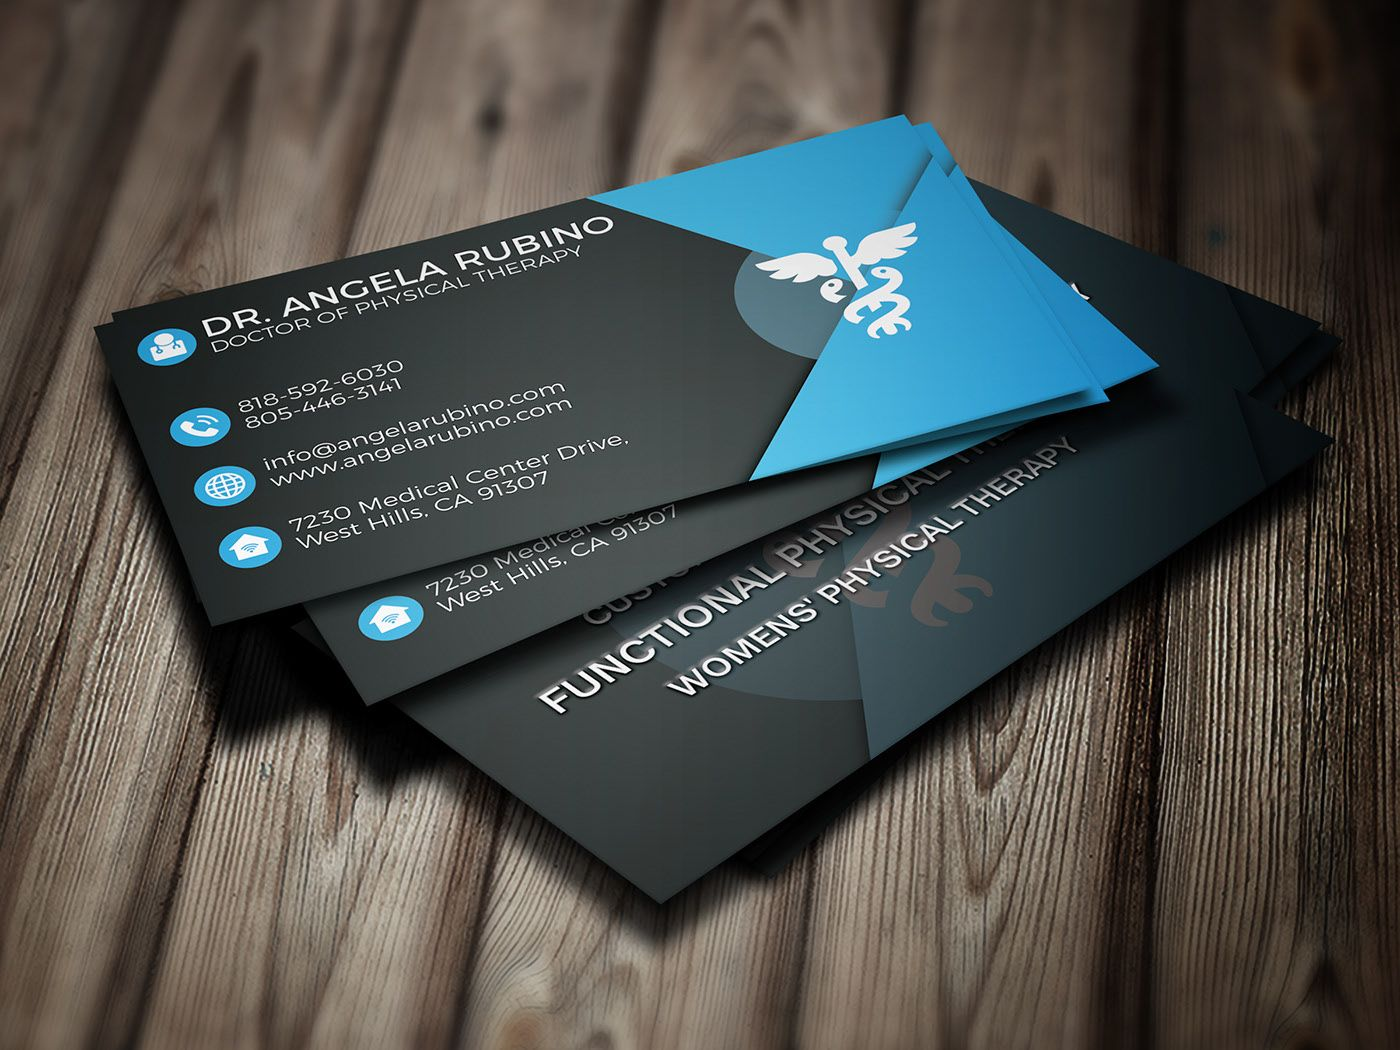 Free Business Card For Doctor On Behance Doctor Business Cards Logo Design Branding Business Cards Visiting Card Design